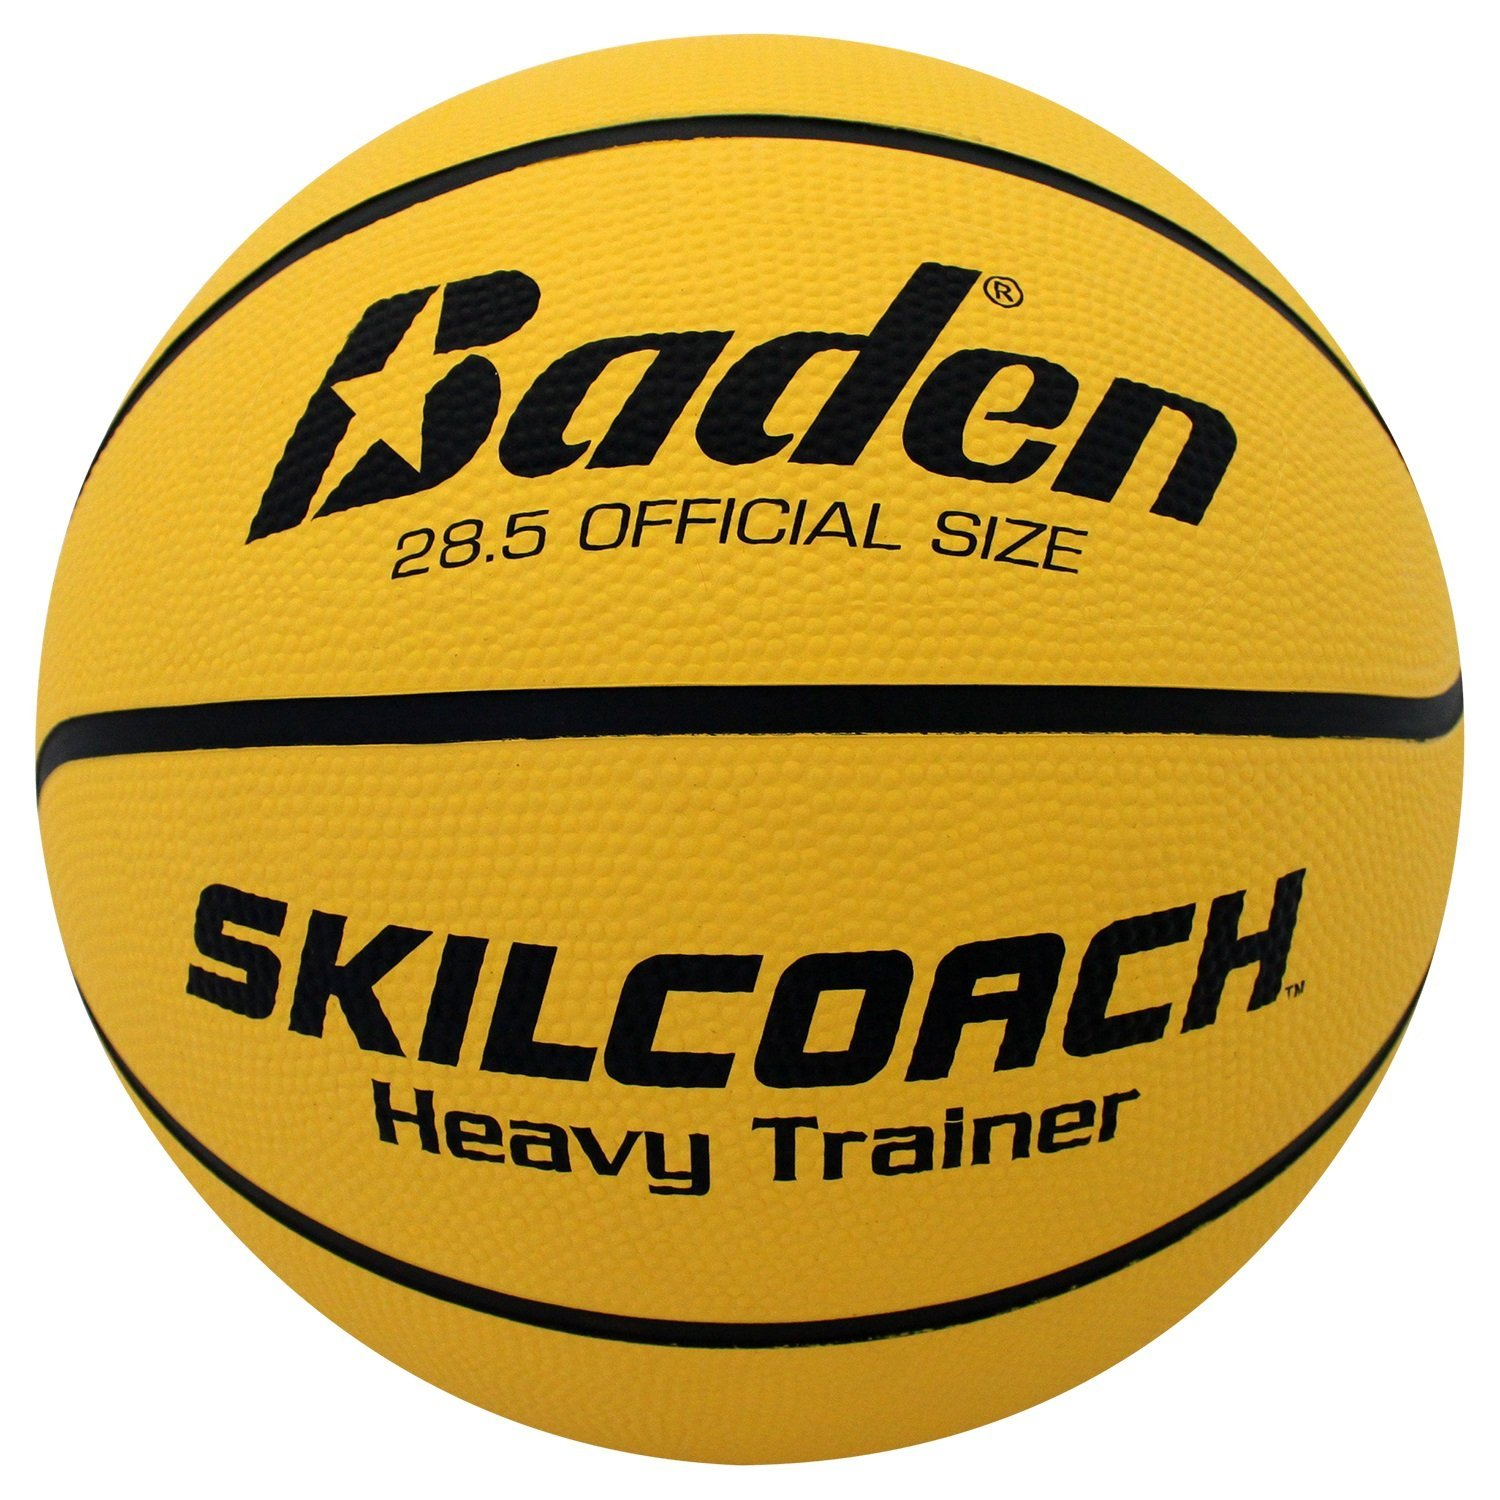 Heavy Trainer Basketball